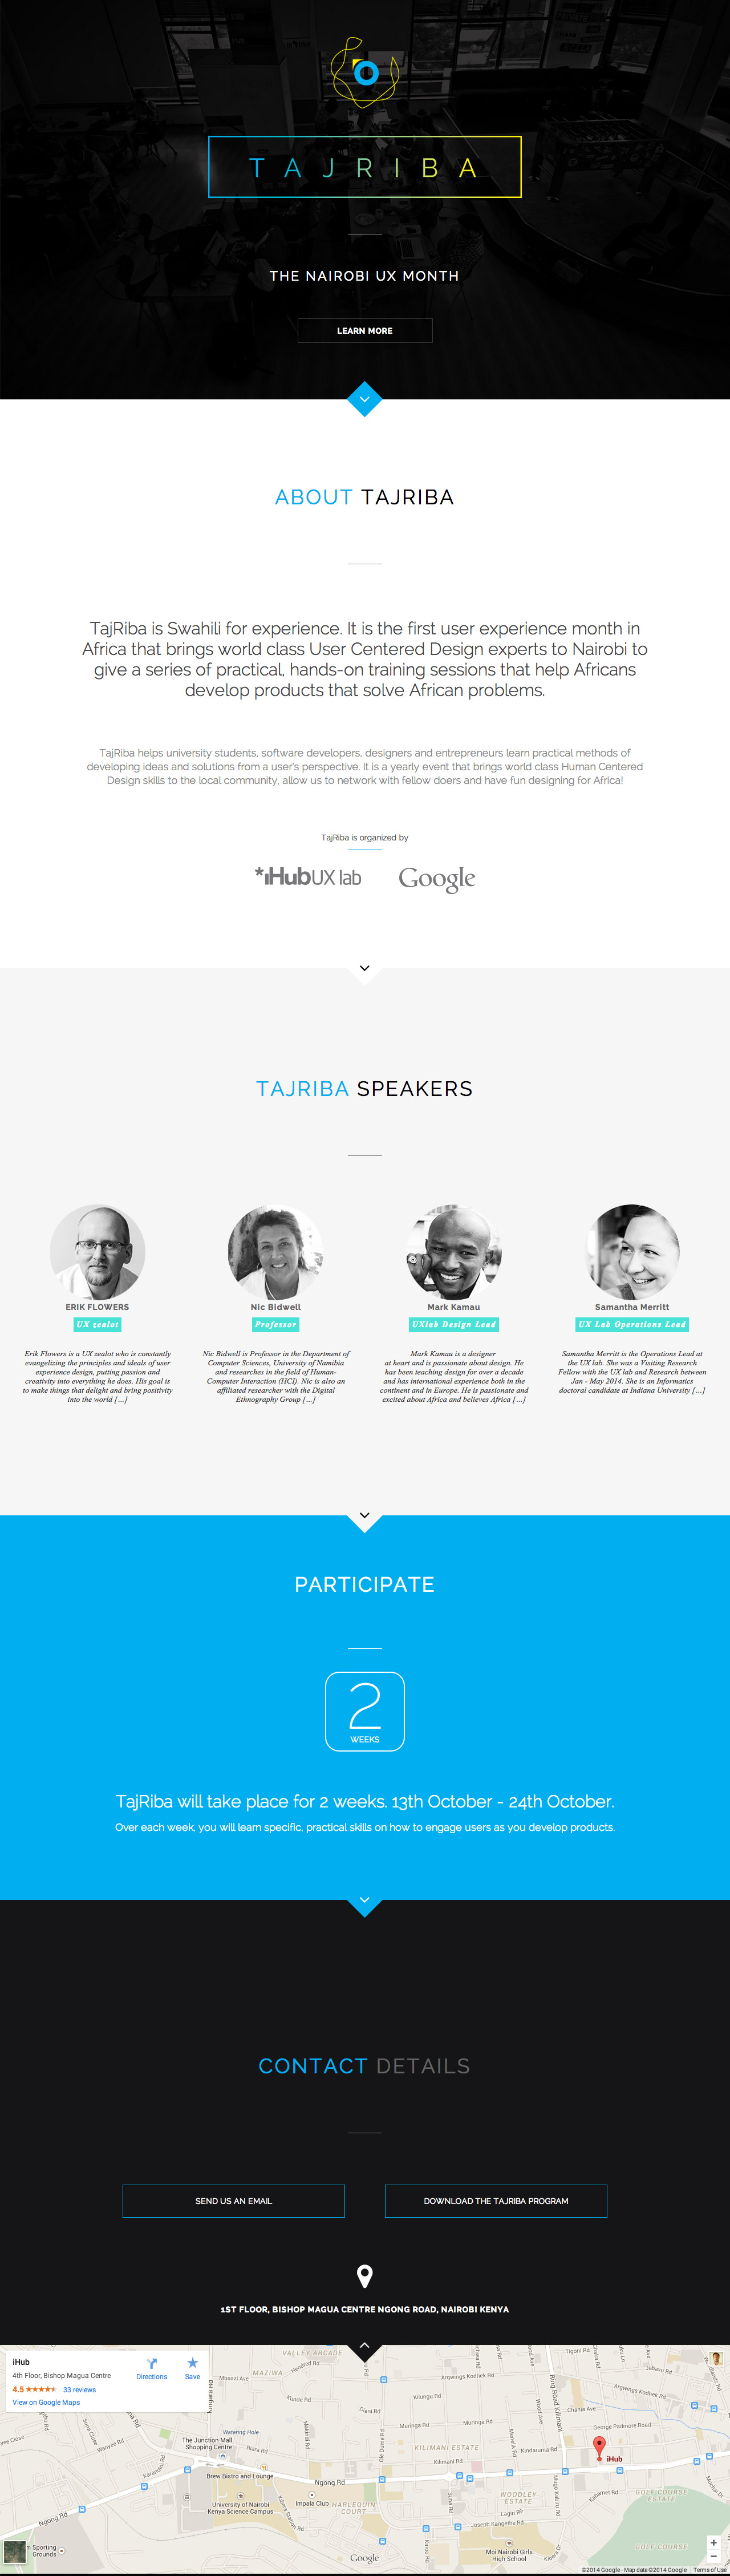 Responsive Landing Page For Tajriba The Annual Ux Event By Ihub Held In Nairobi Kenya Tajriba Is Swahili For Ex One Page Website First Page Landing Page